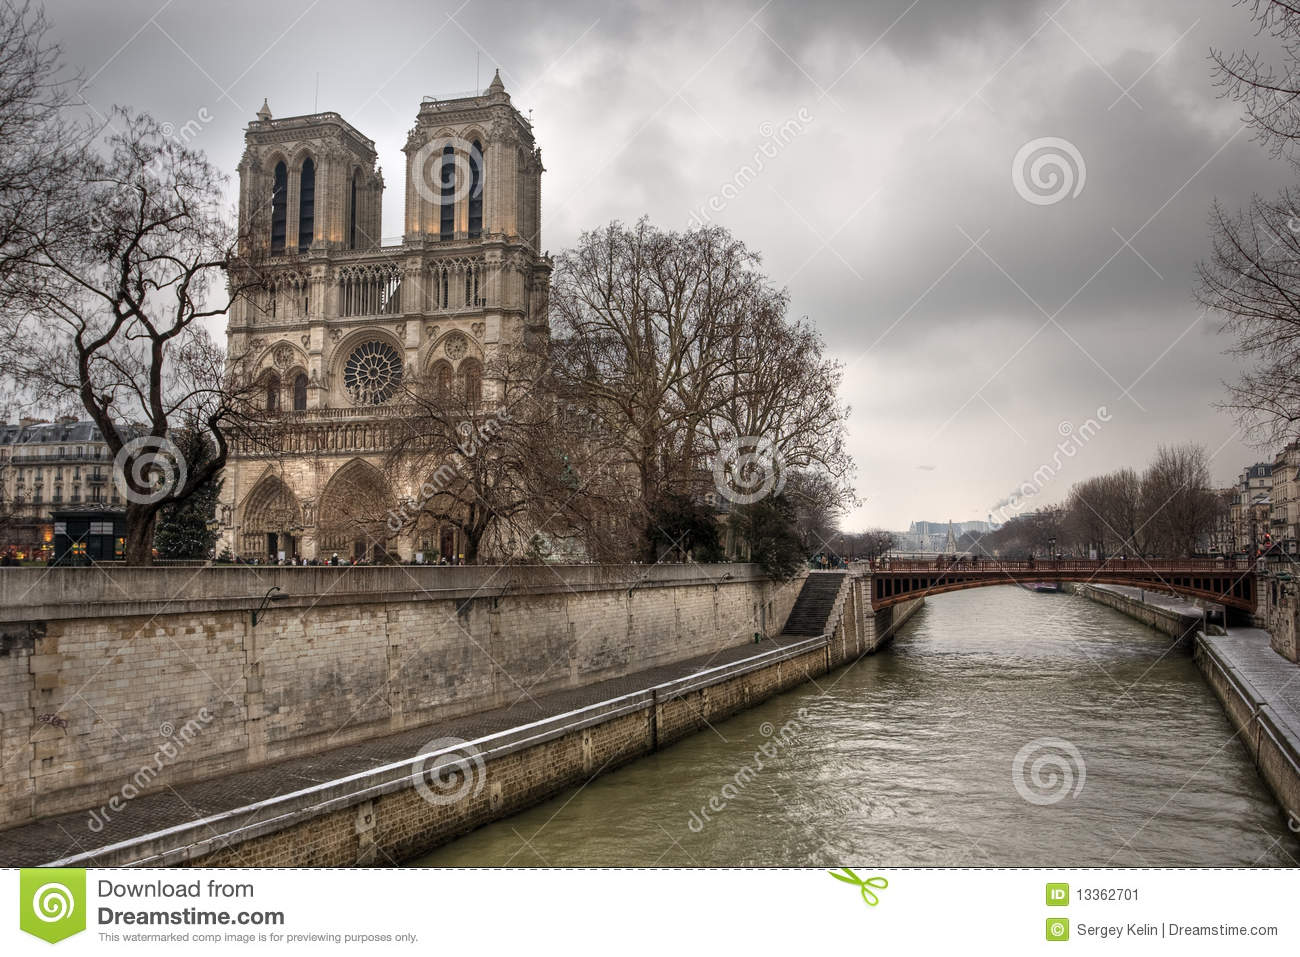 Notre Dame De Paris And Siena River Stock Image.